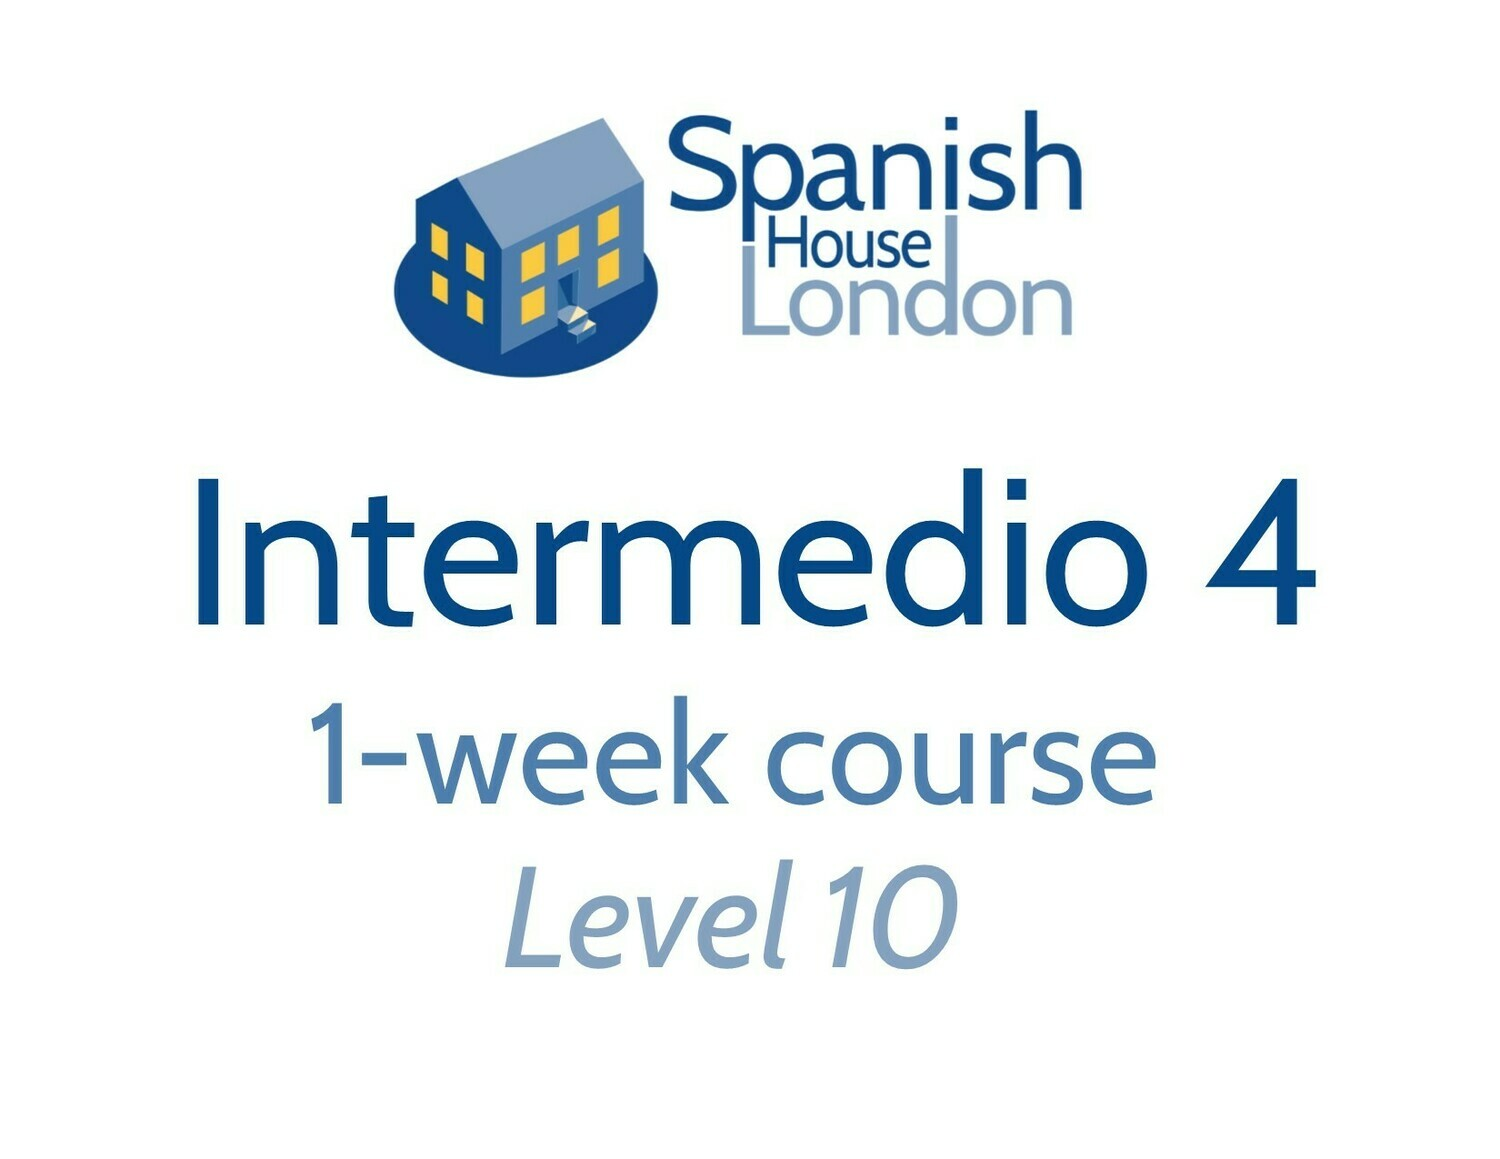 Intermedio 4 One-Week Intensive Course starting on 11th November at 10am in Clapham North